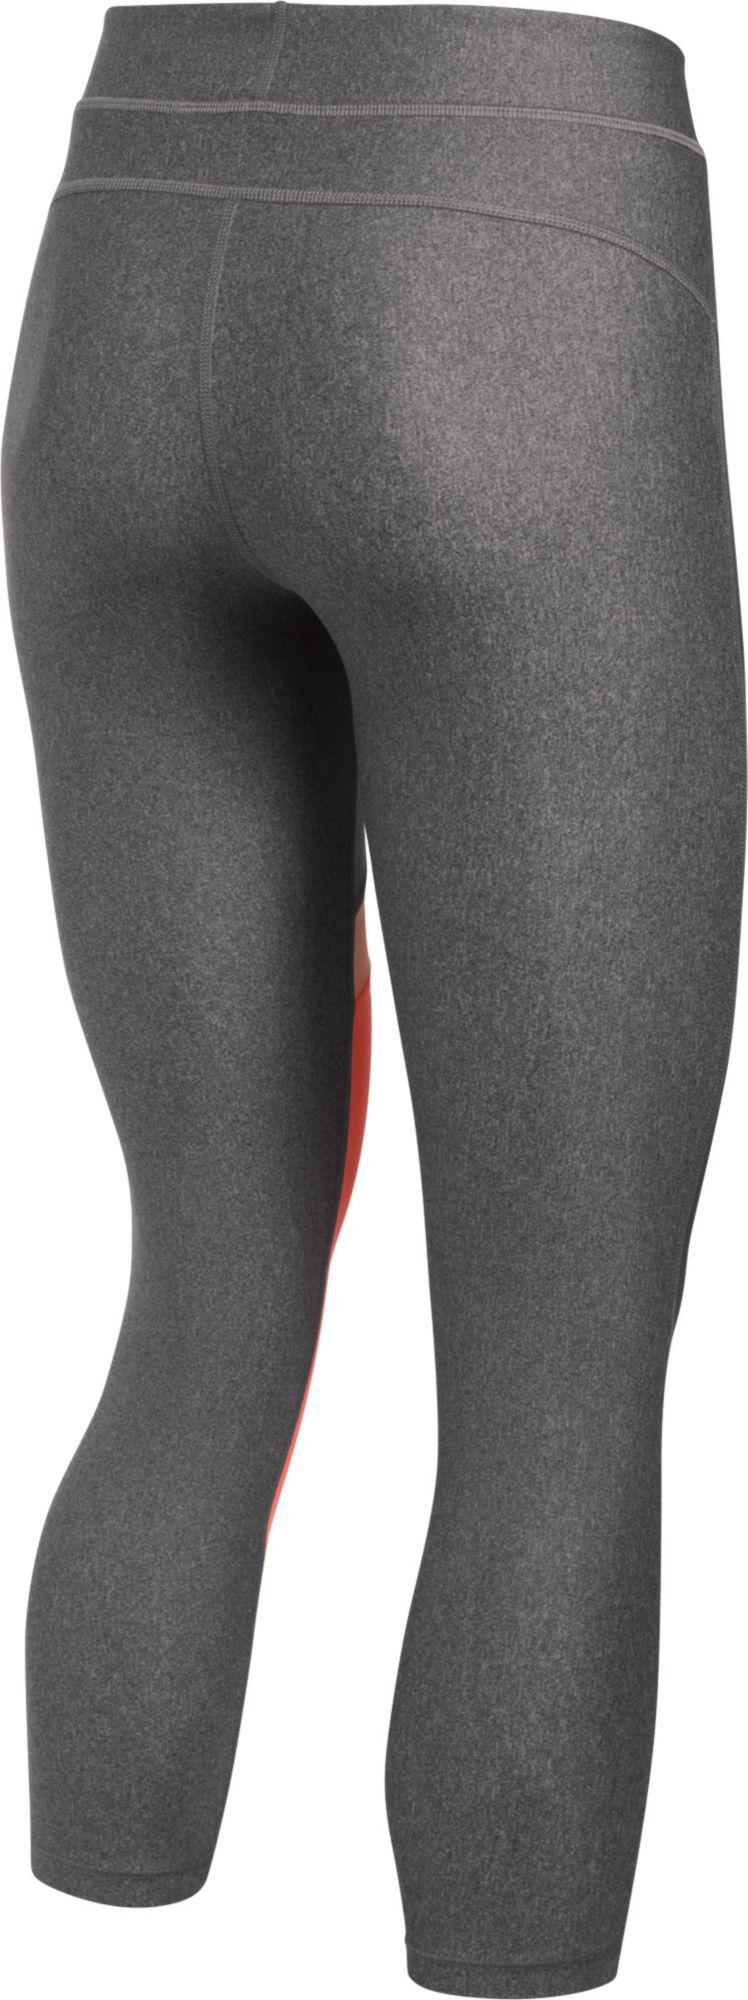 4b756bdaccbd Lyst - Under Armour Heatgear Color Block Capris in Gray